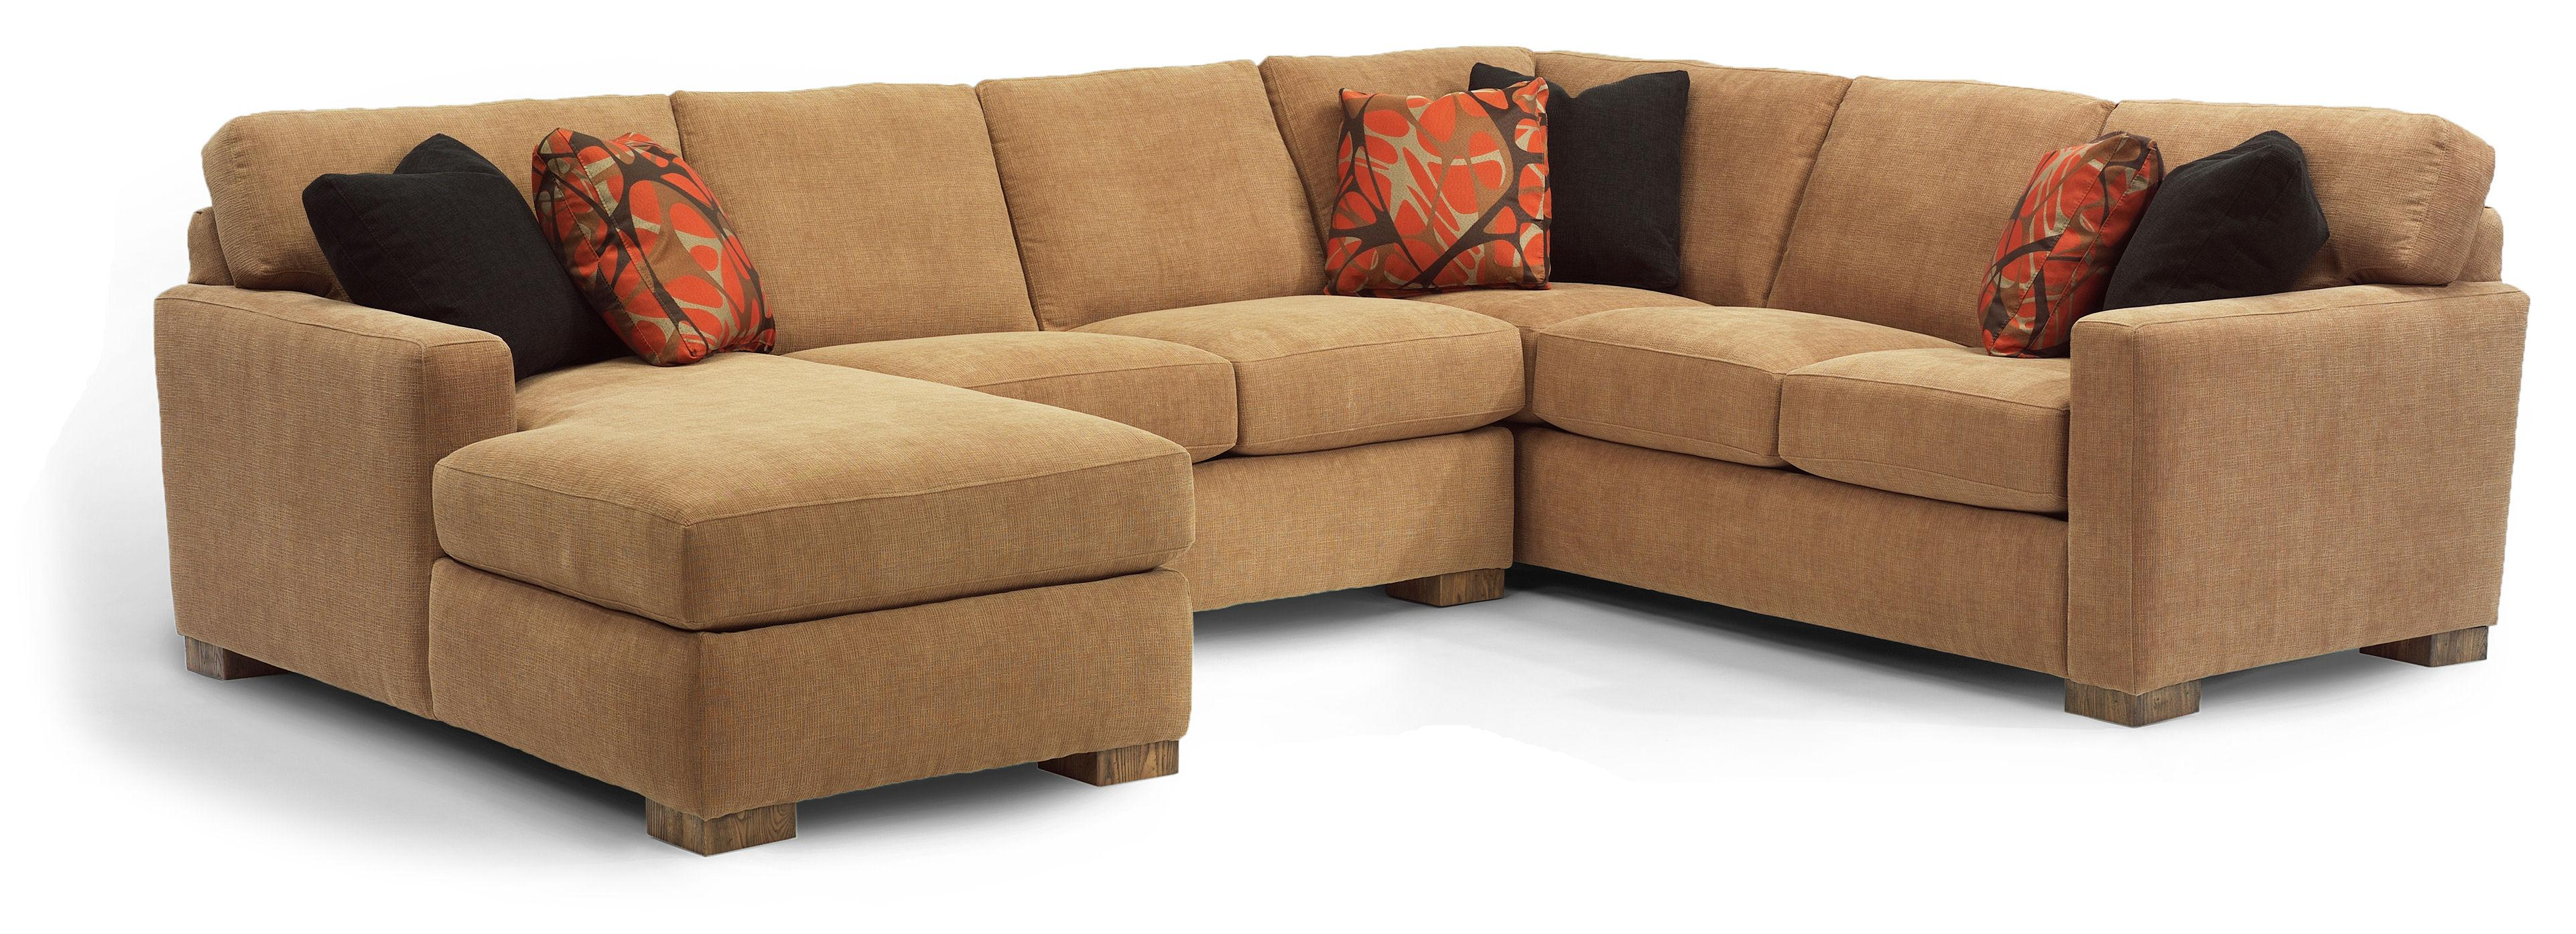 Flexsteel Bryant Sectional Sofa - Item Number: 7399-25+29+34